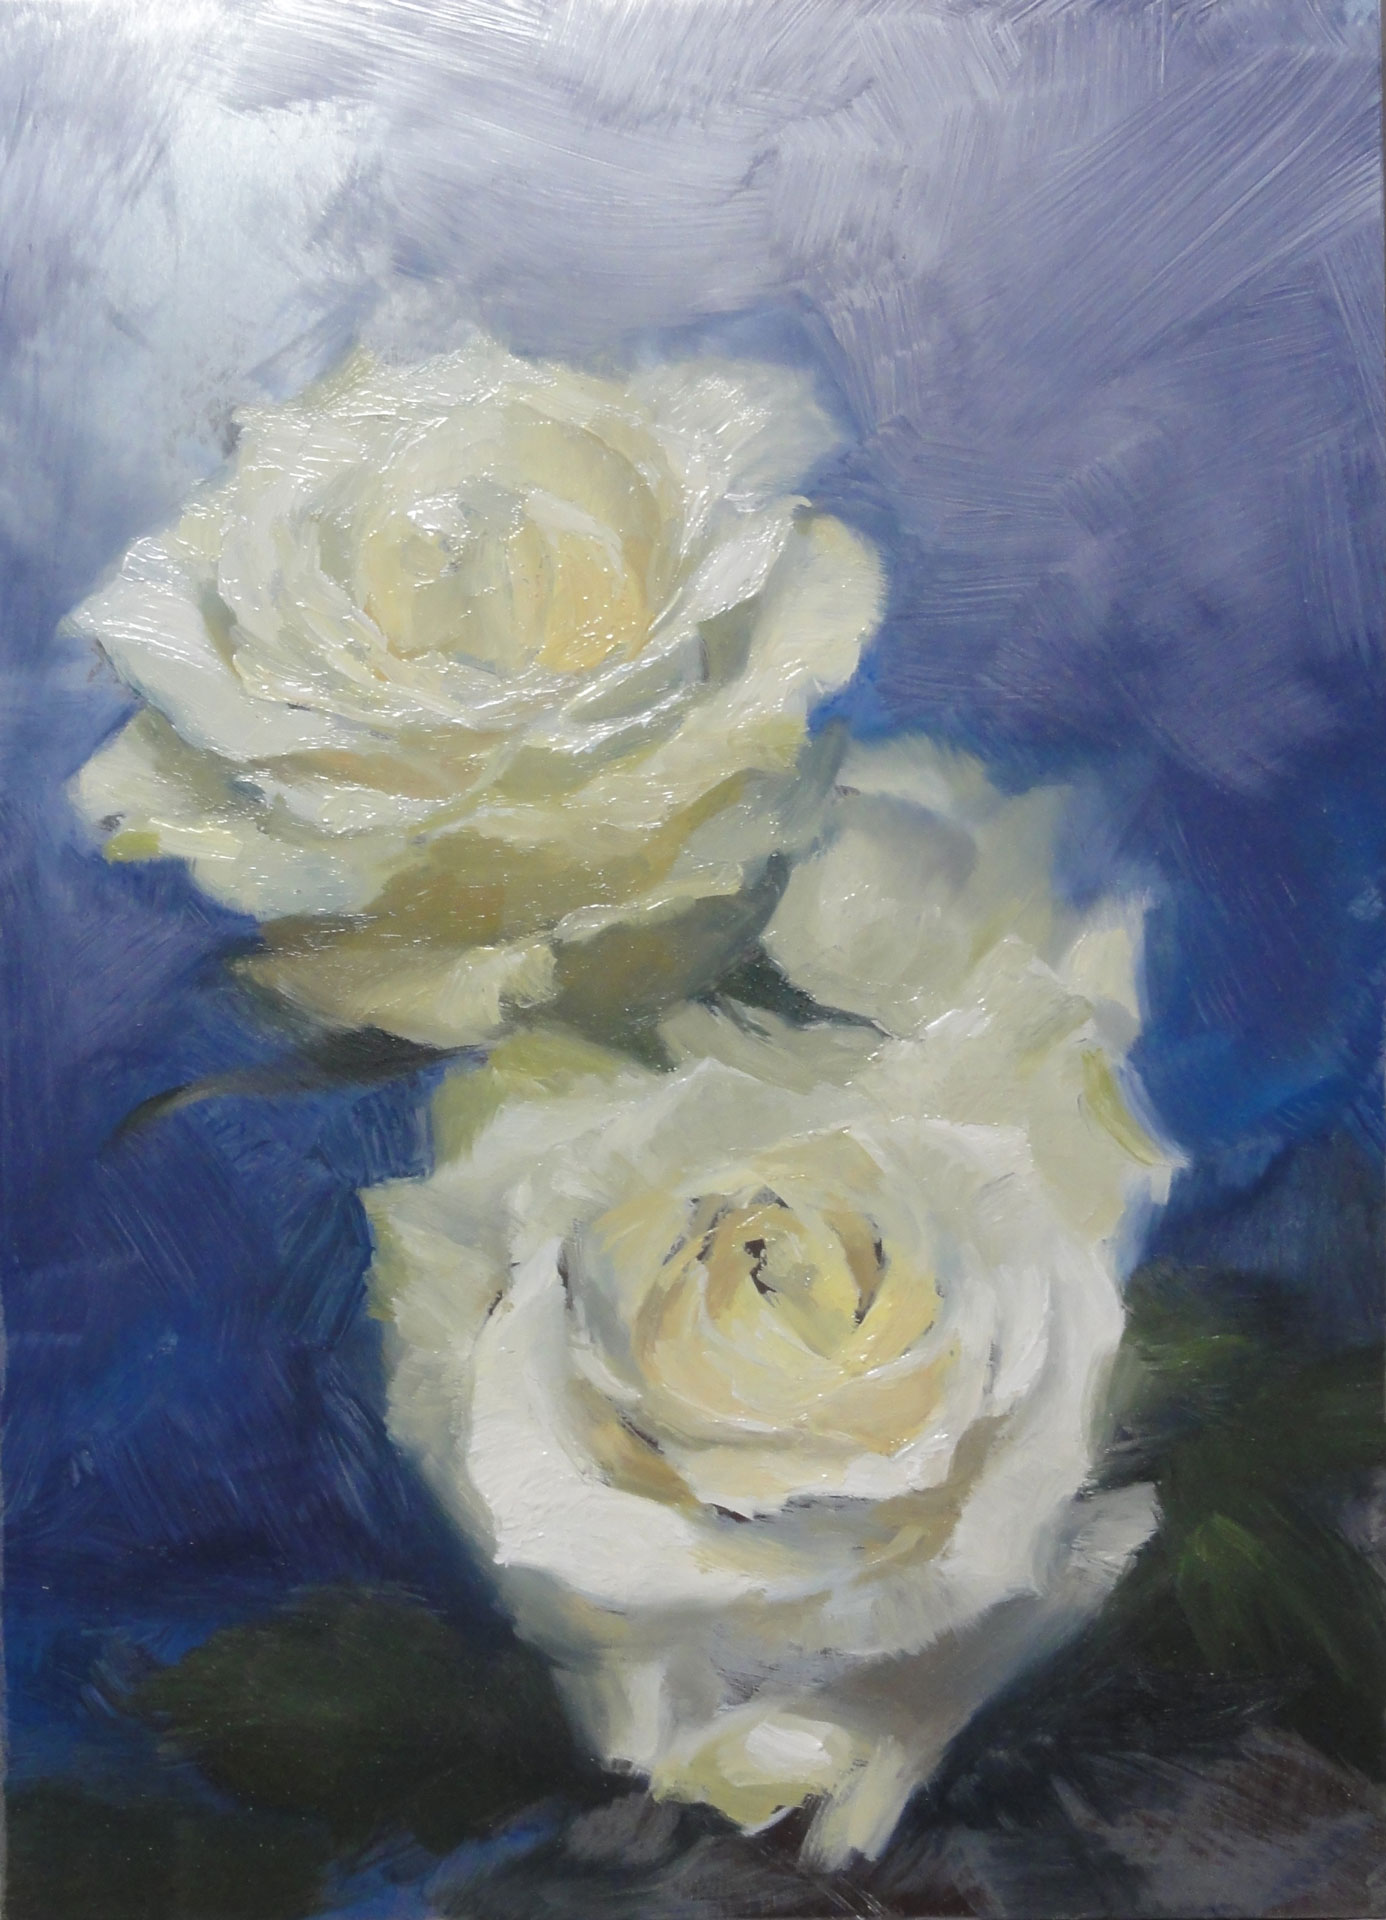 AISB 18P 002 White roses - Sahra Becherer (Teacher)